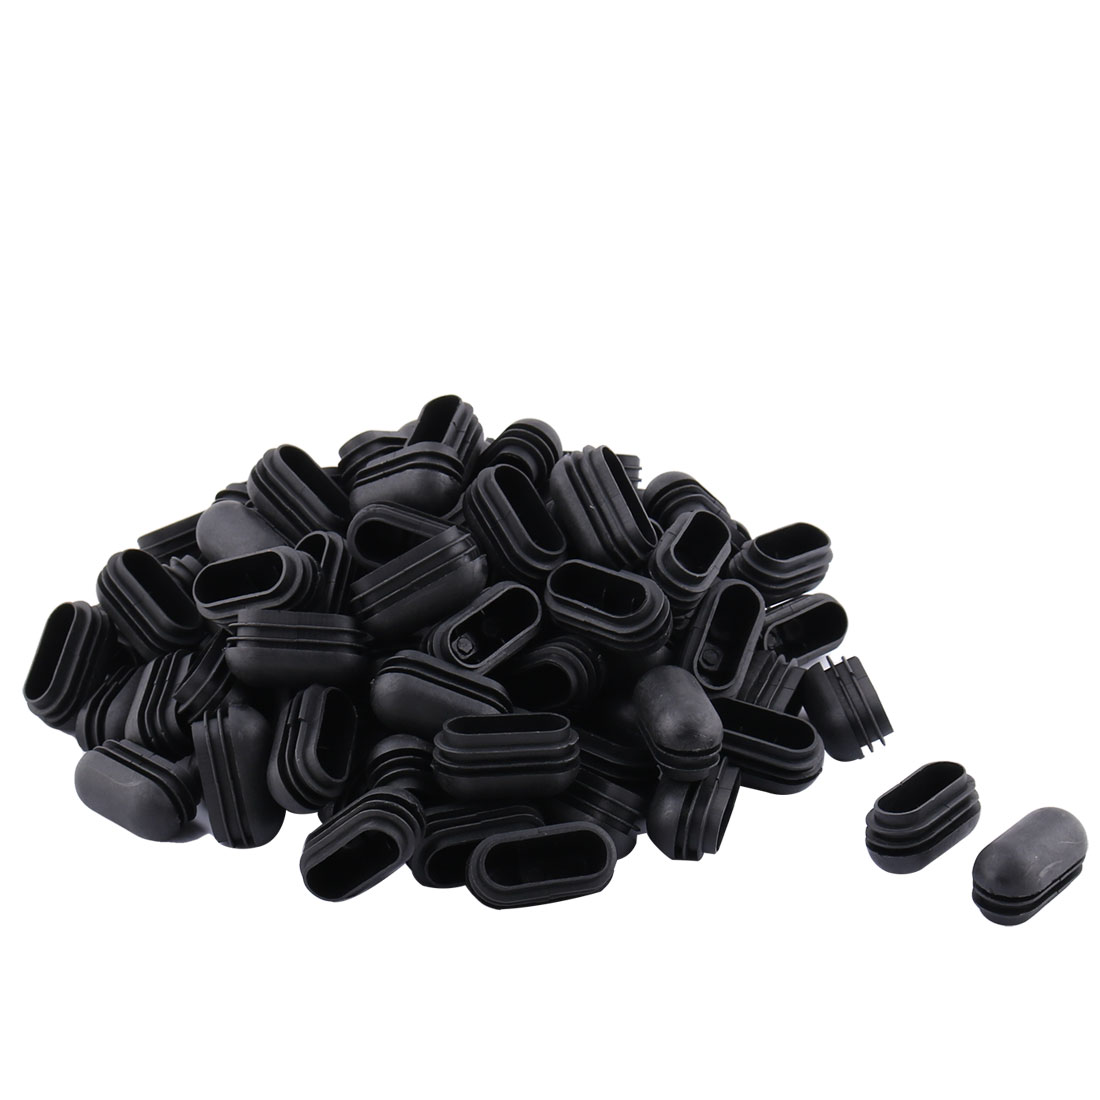 Home Plastic Oval Table Chair Leg Feet Tube Insert Cap Black 24mm x 49mm 100pcs